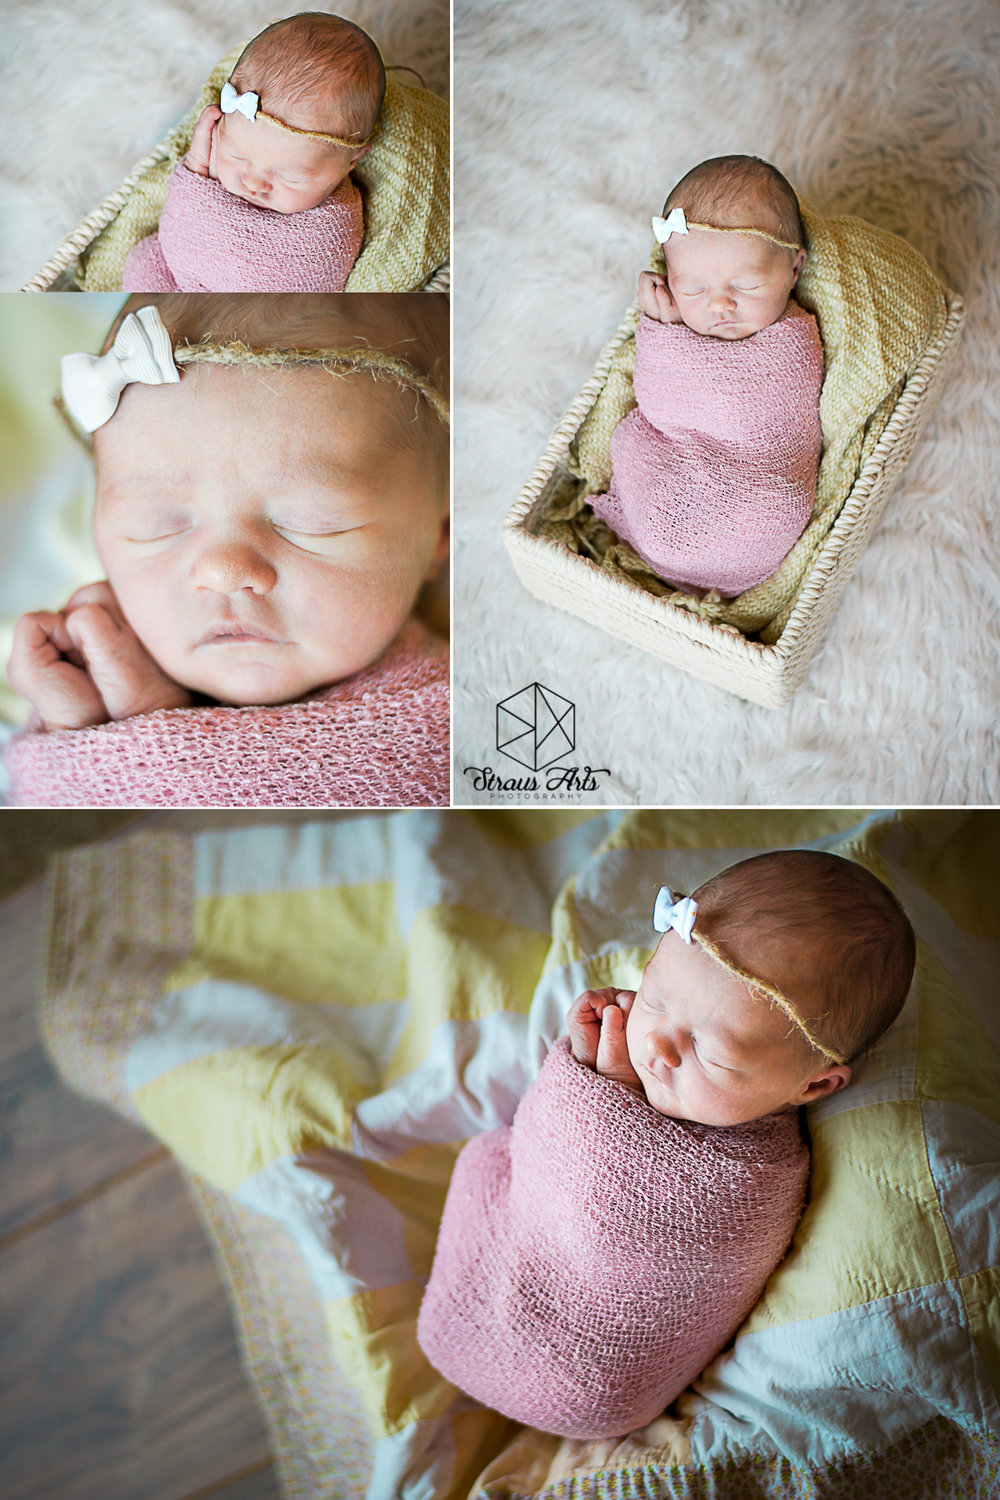 Straus Arts Photography: Lifestyle Newborns.  Sweet little Hazel